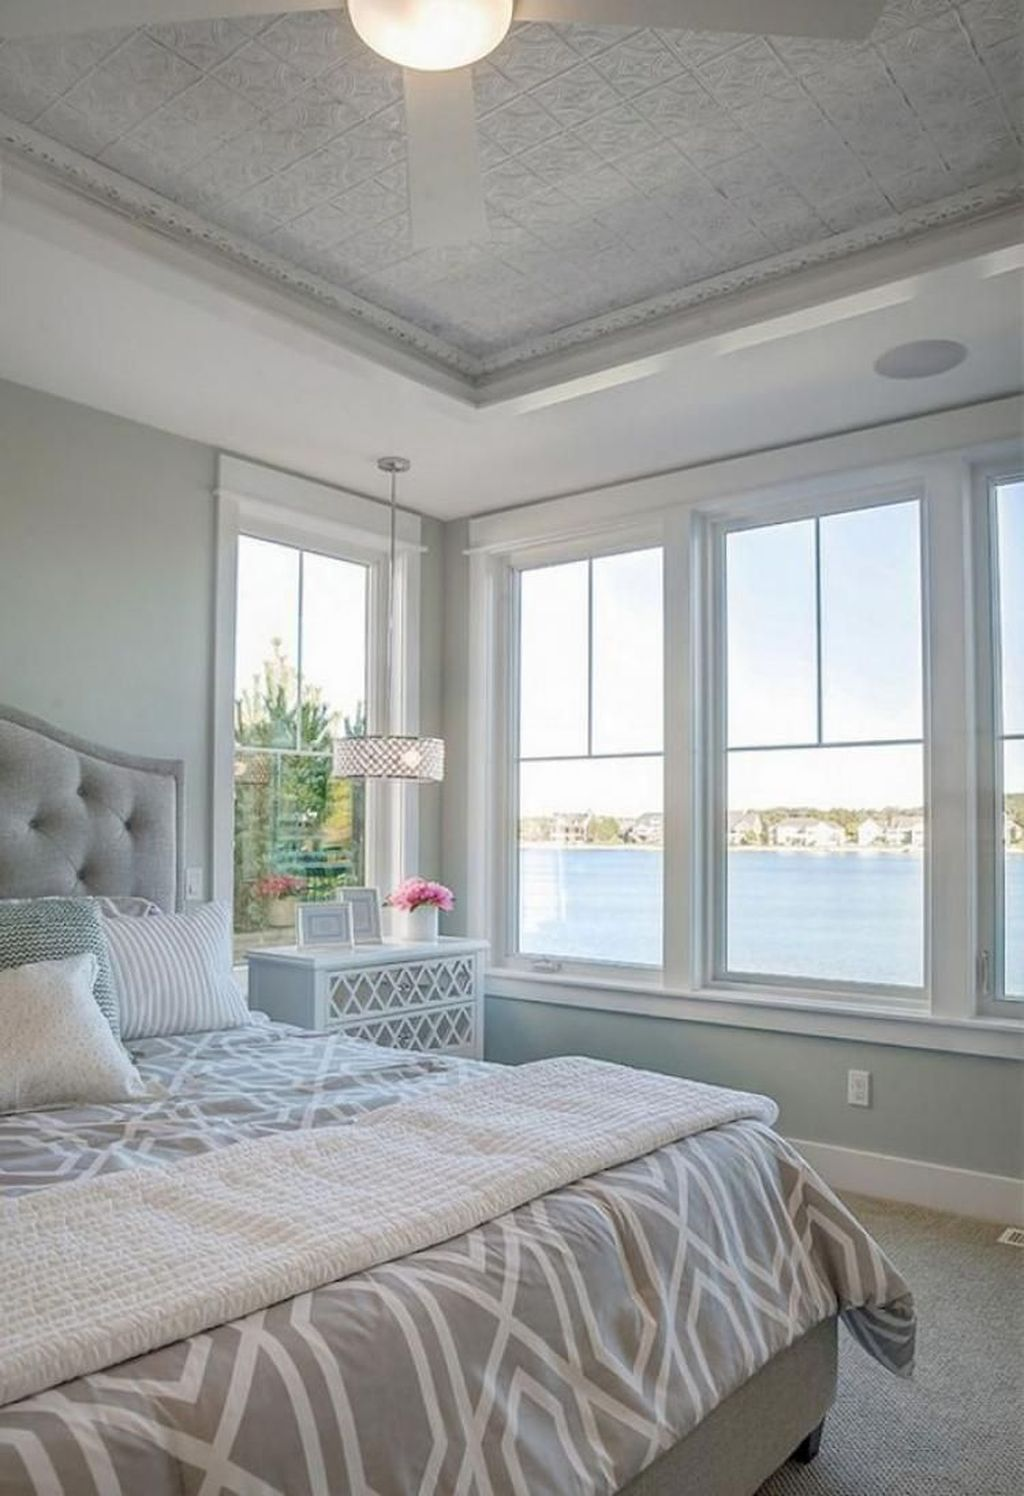 34 Cozy Lake House Bedroom Decorating Ideas Home Bestiest Beach House Interior Design Coastal Style Bedroom Beach House Interior